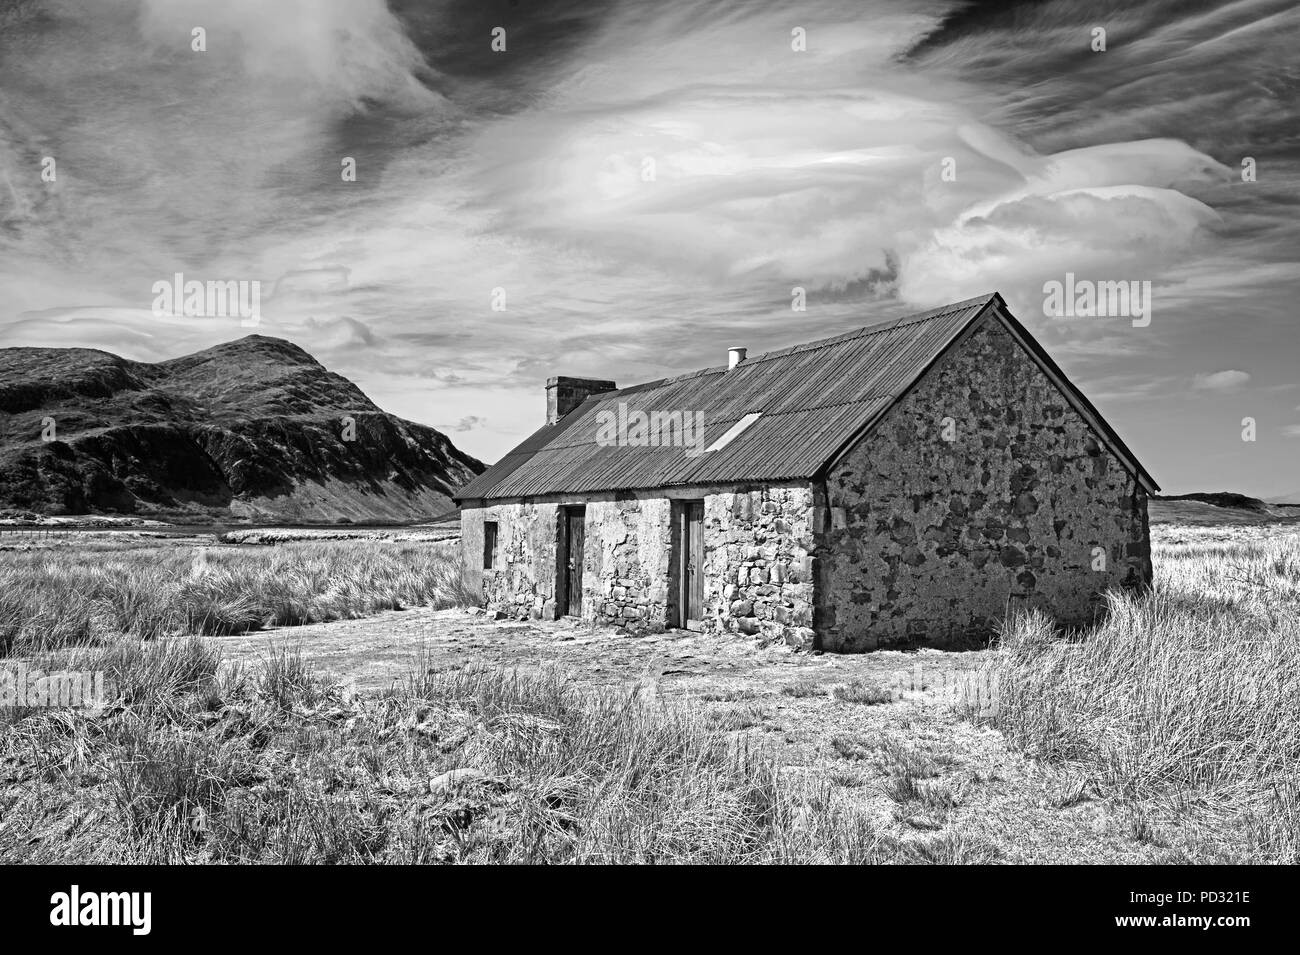 Old traditional hut in remote moorland location, Sutherland, Scottish Highlands, mountain Ben stack in the background, Scotland UK. - Stock Image